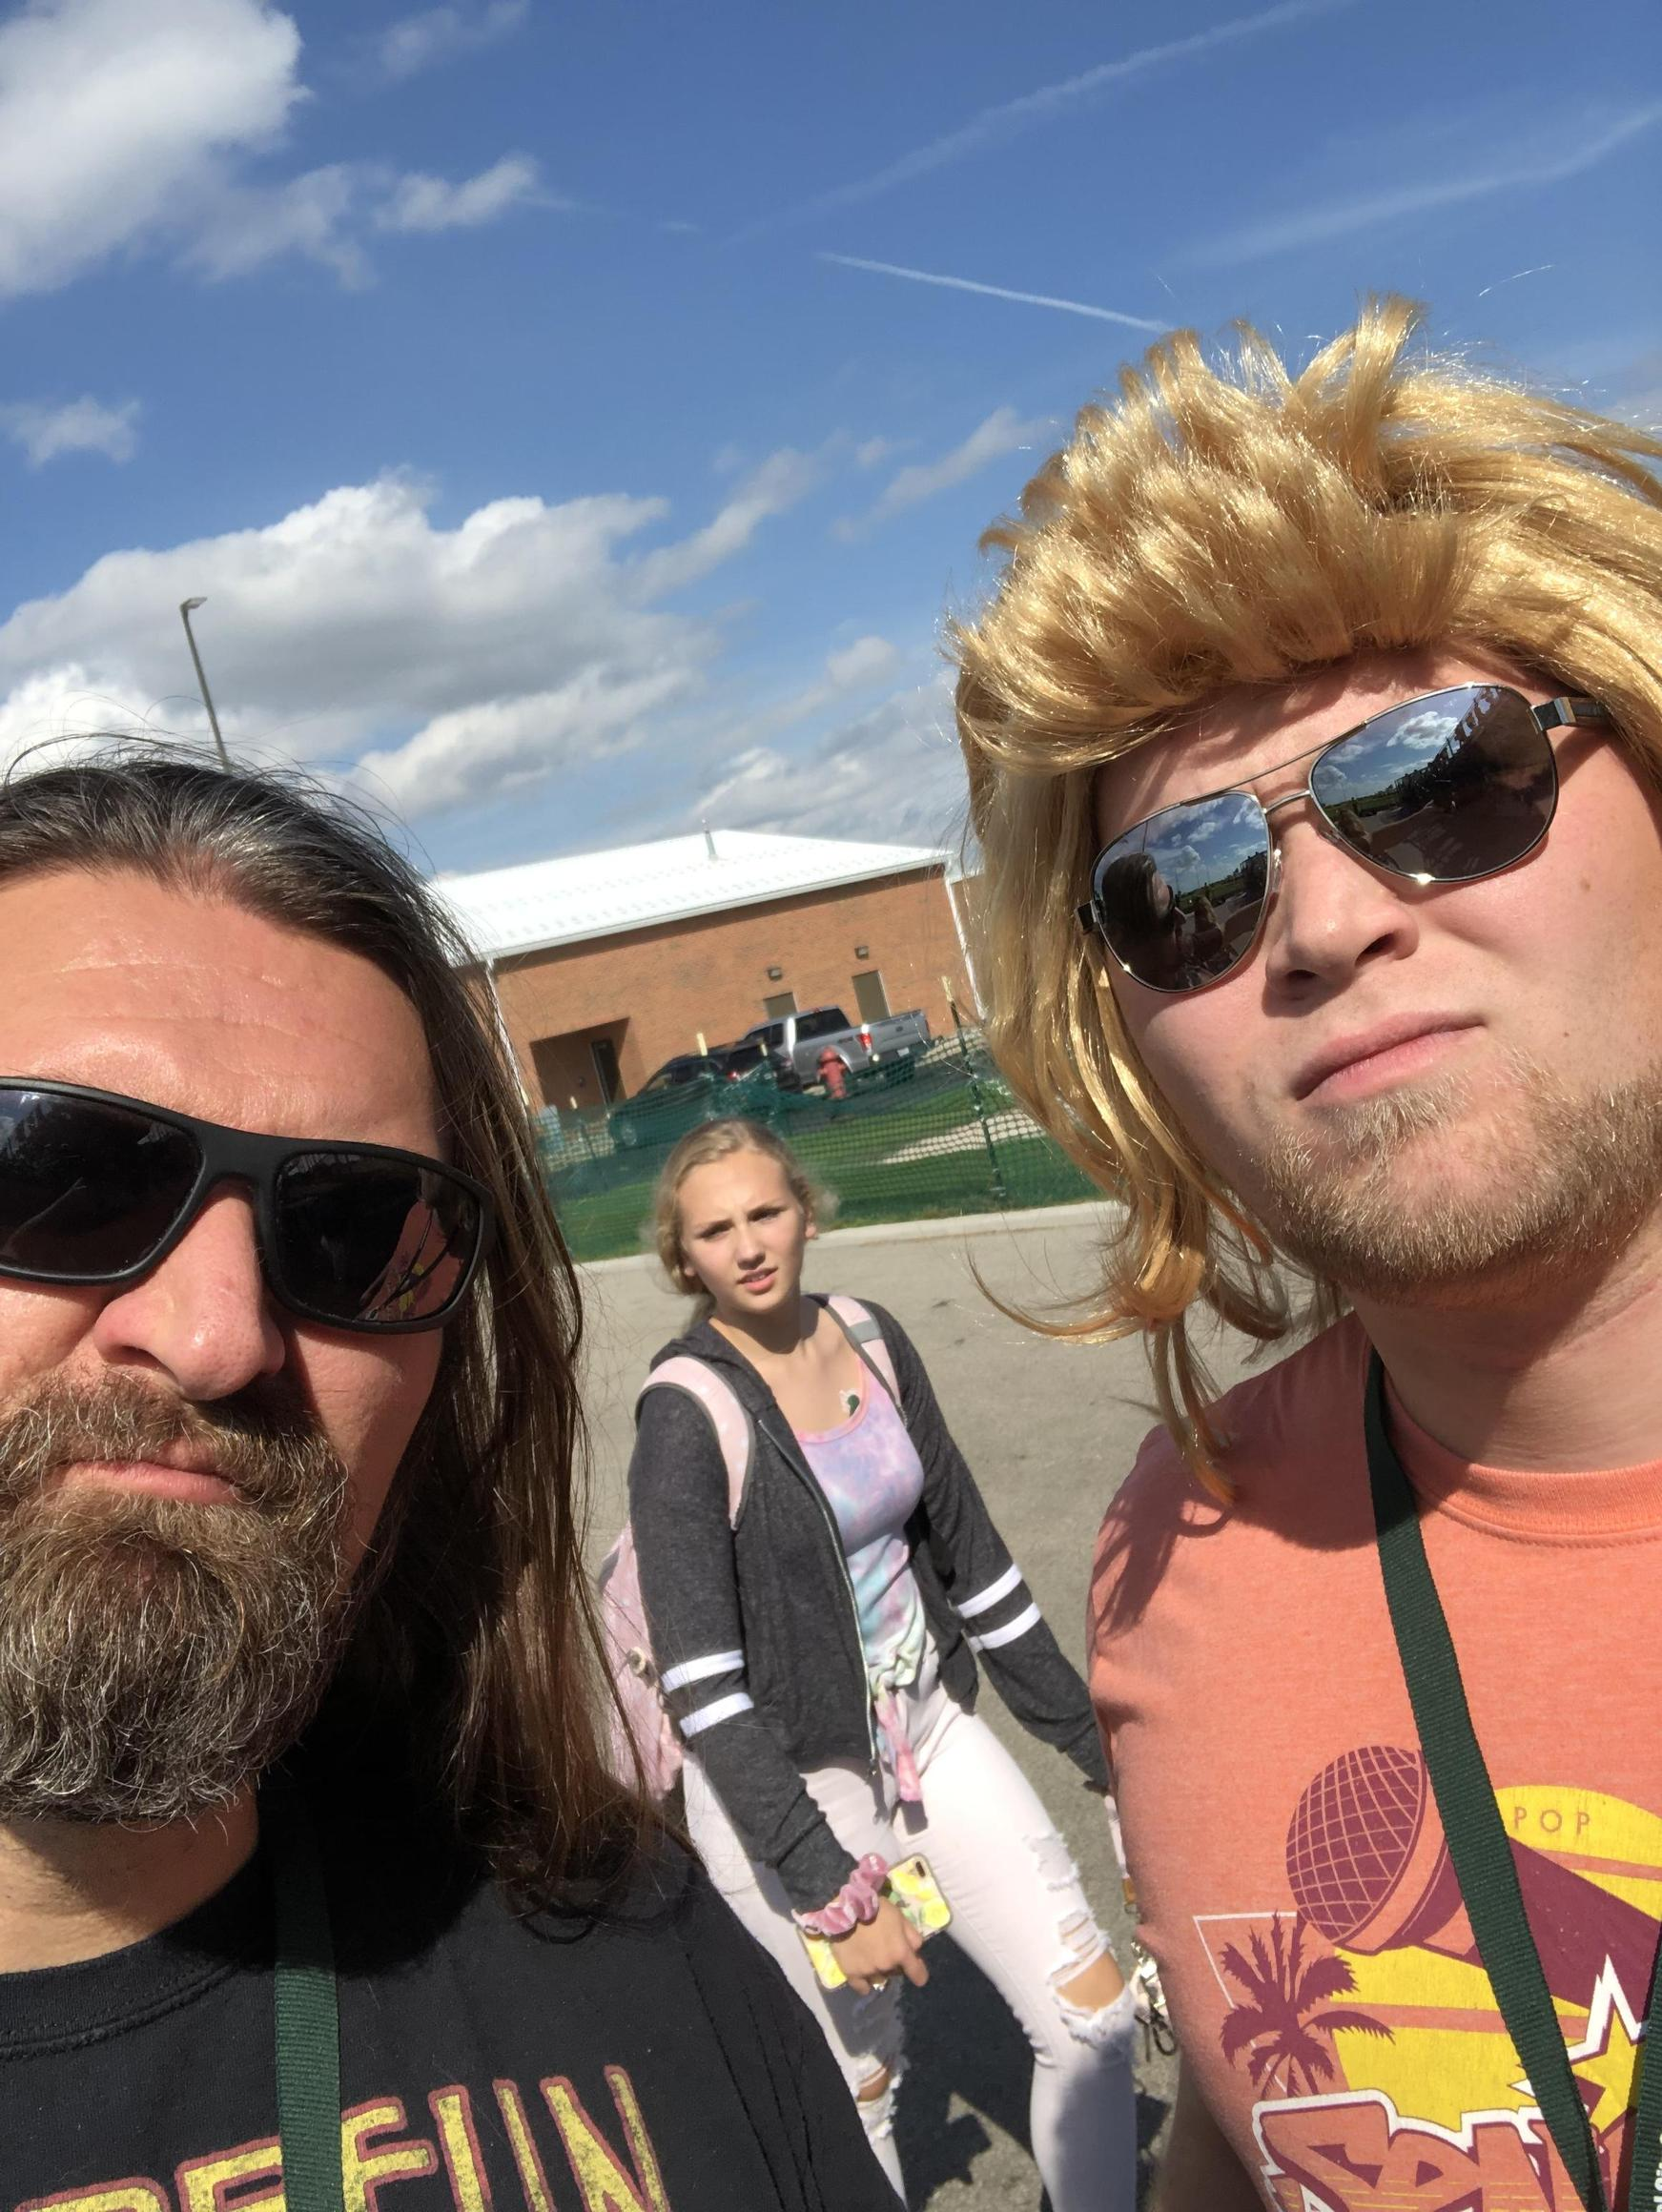 Two dudes with long hair.